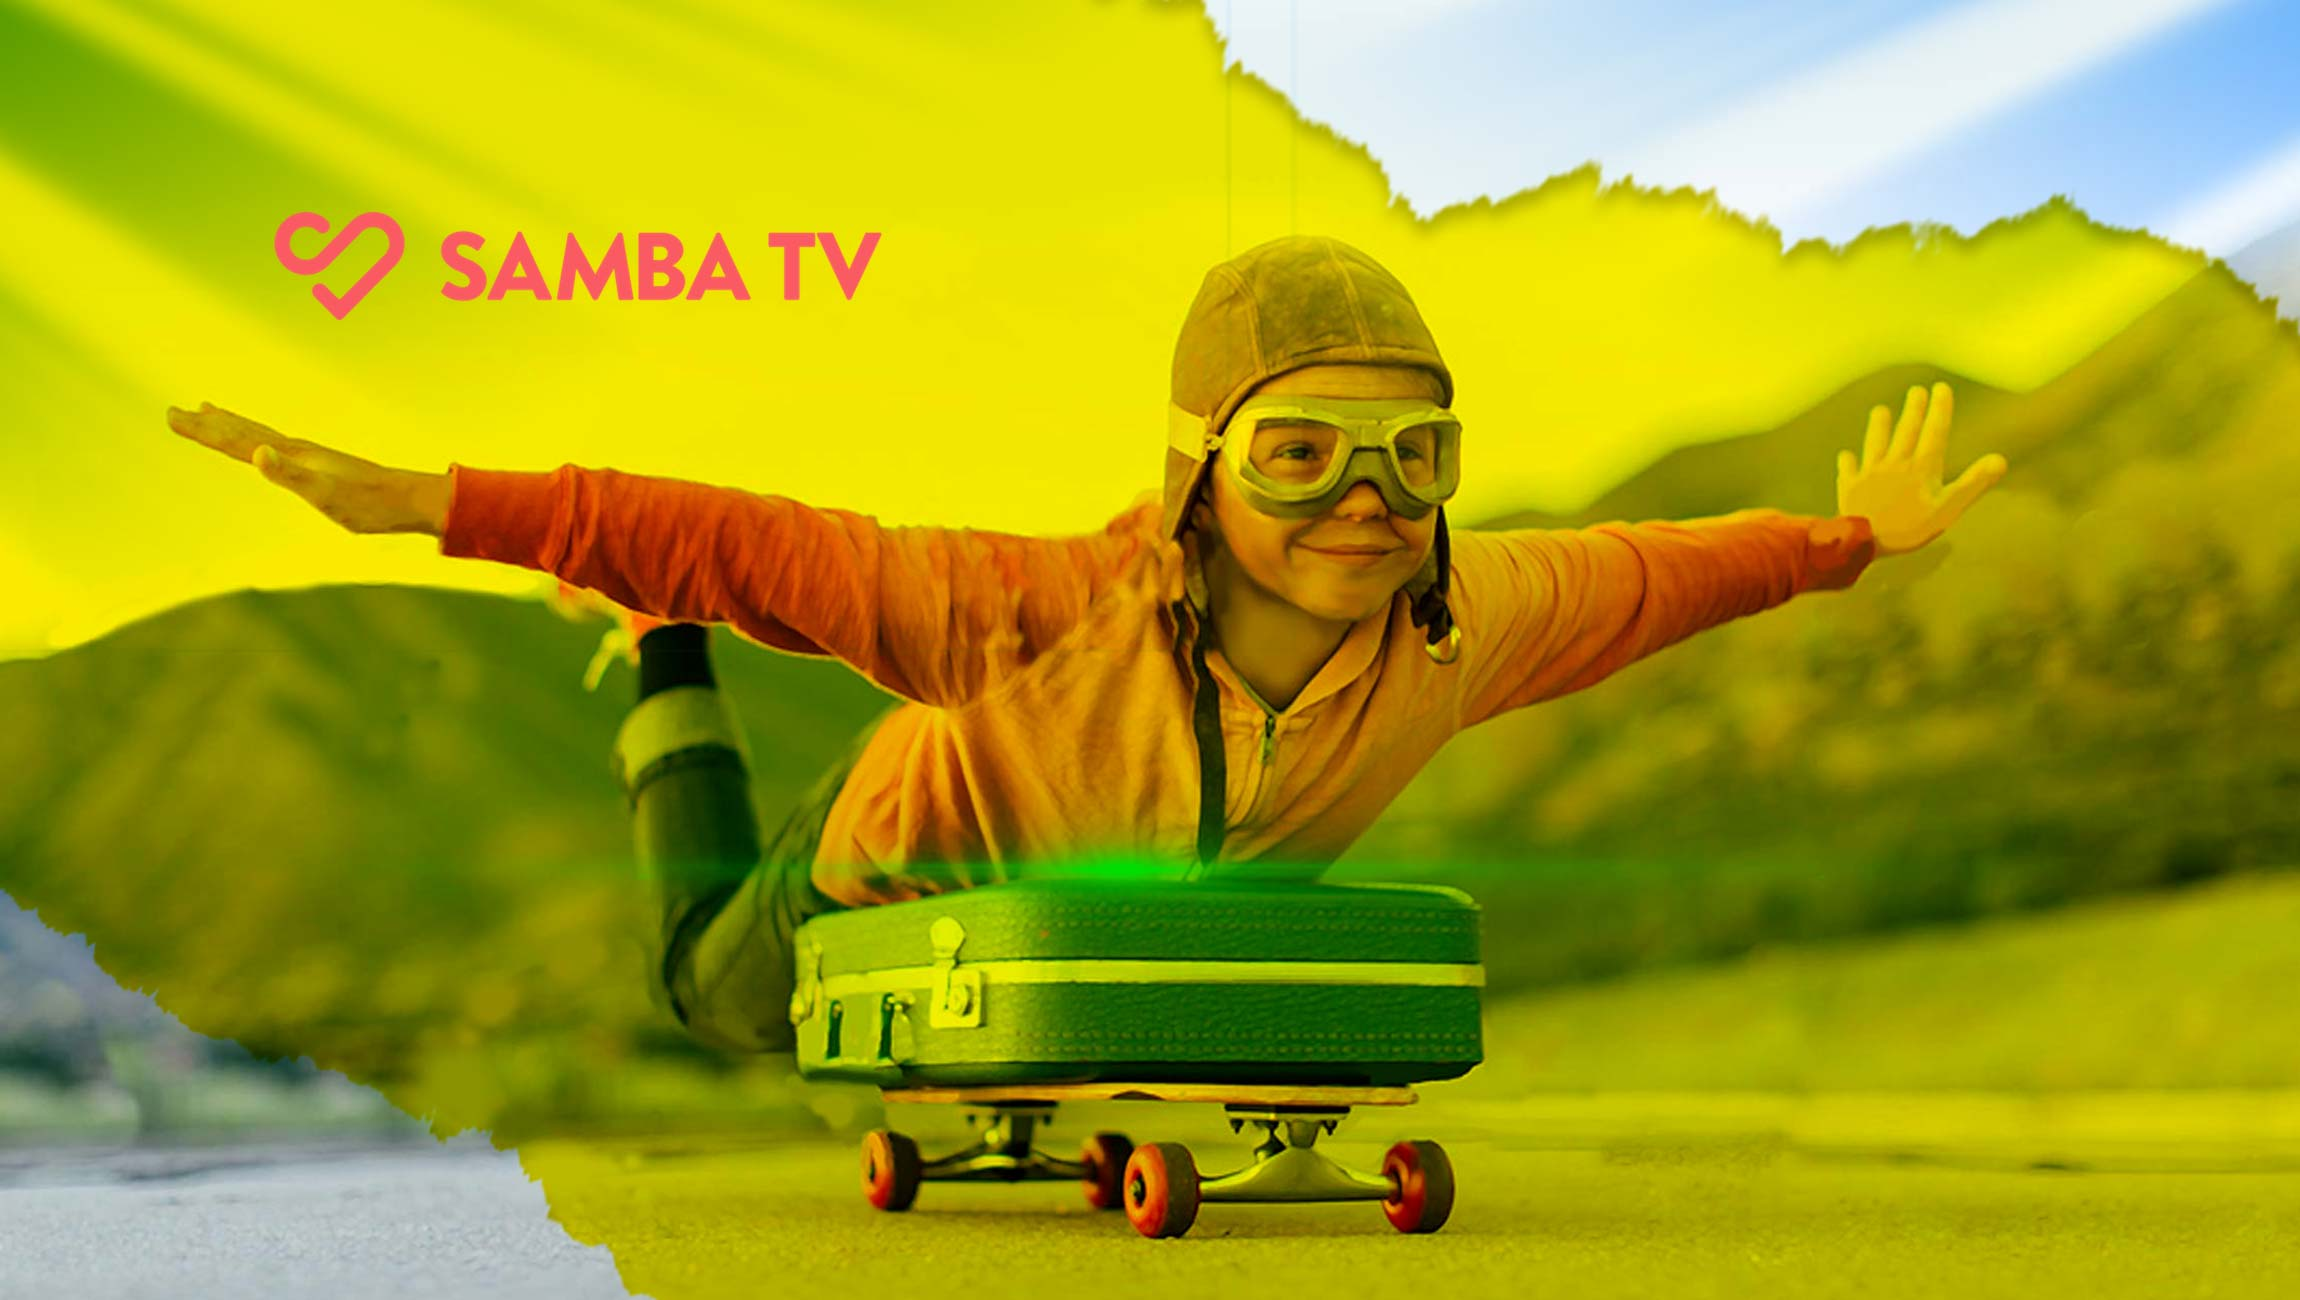 Samba TV Announces Real-time Picture Quality Innovation Powered by AI for Gaming, Movies, and Sports 1